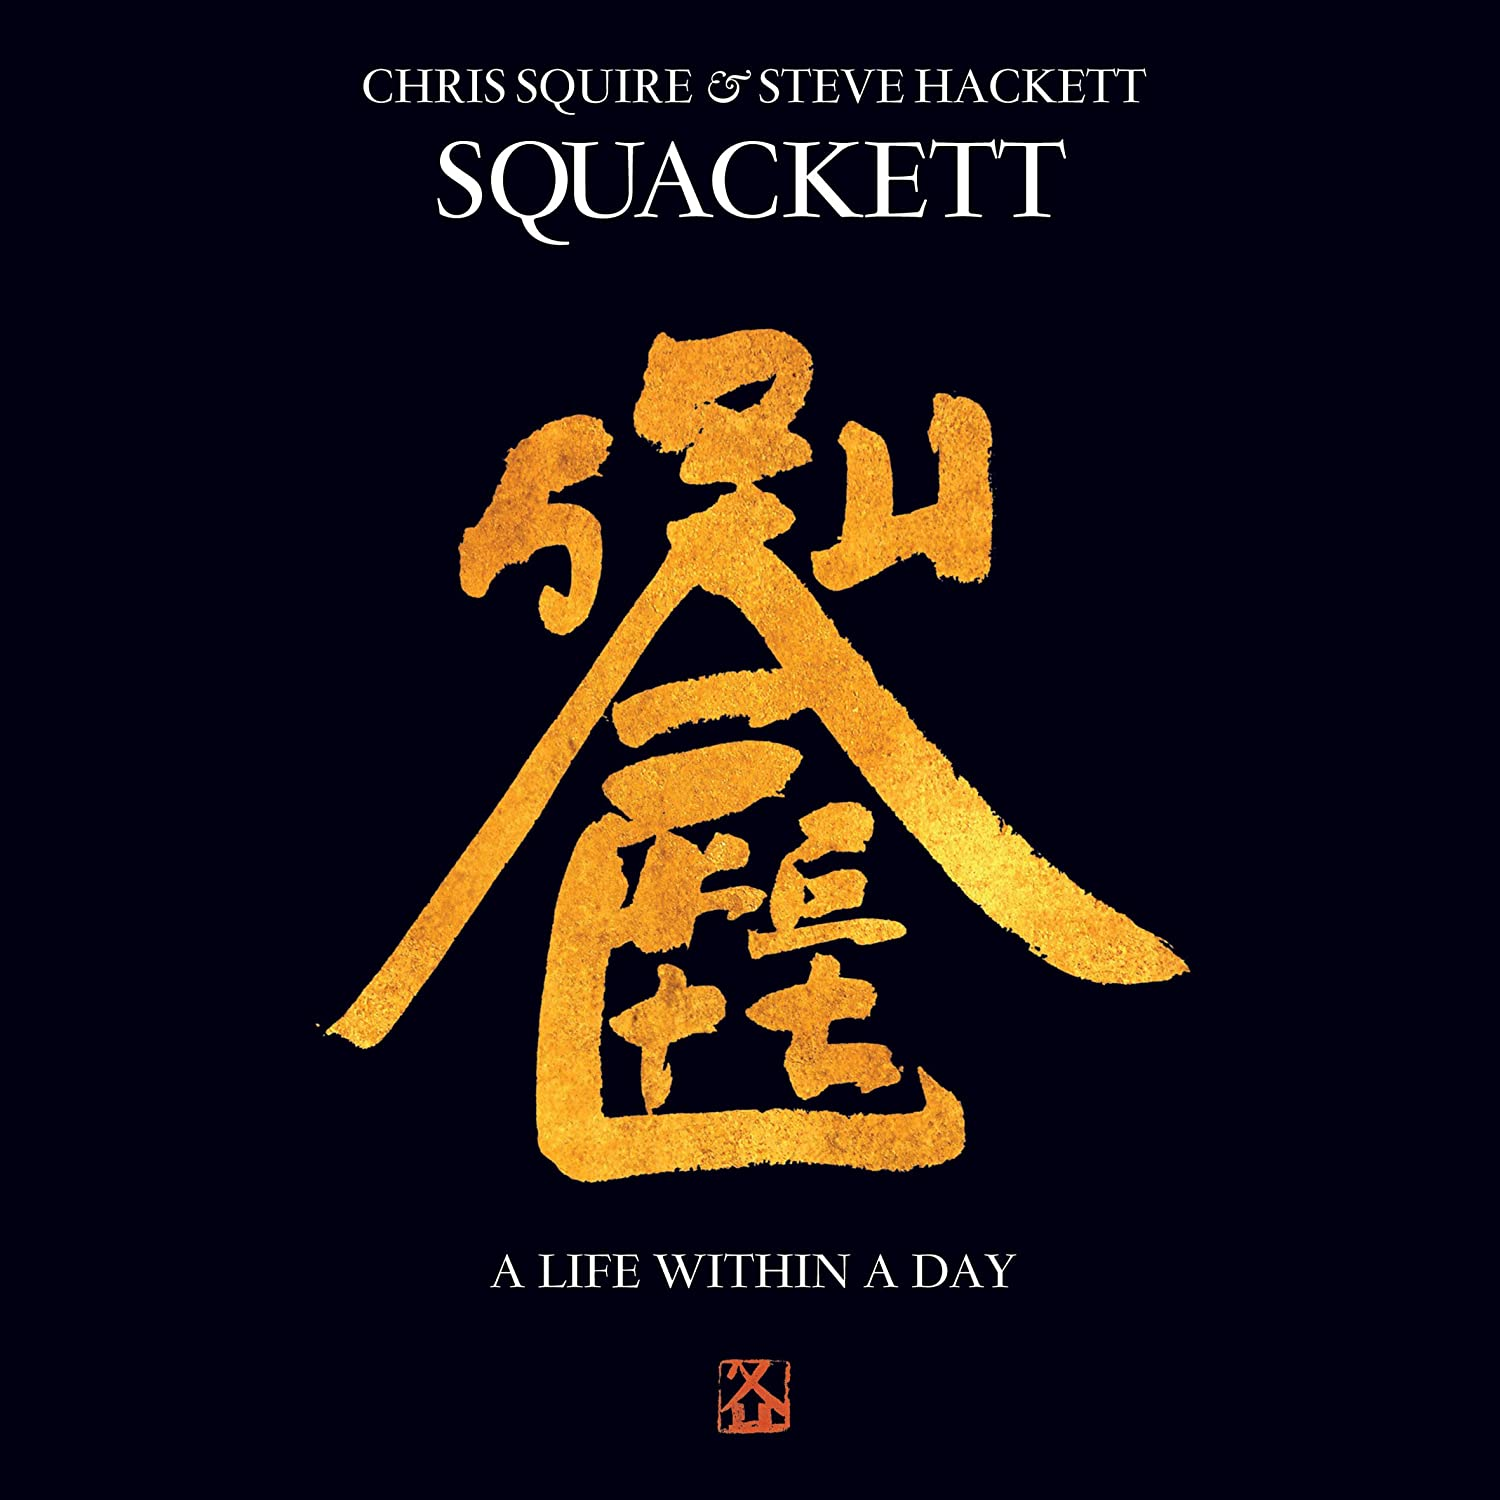 Squackett – A Life Within A Day